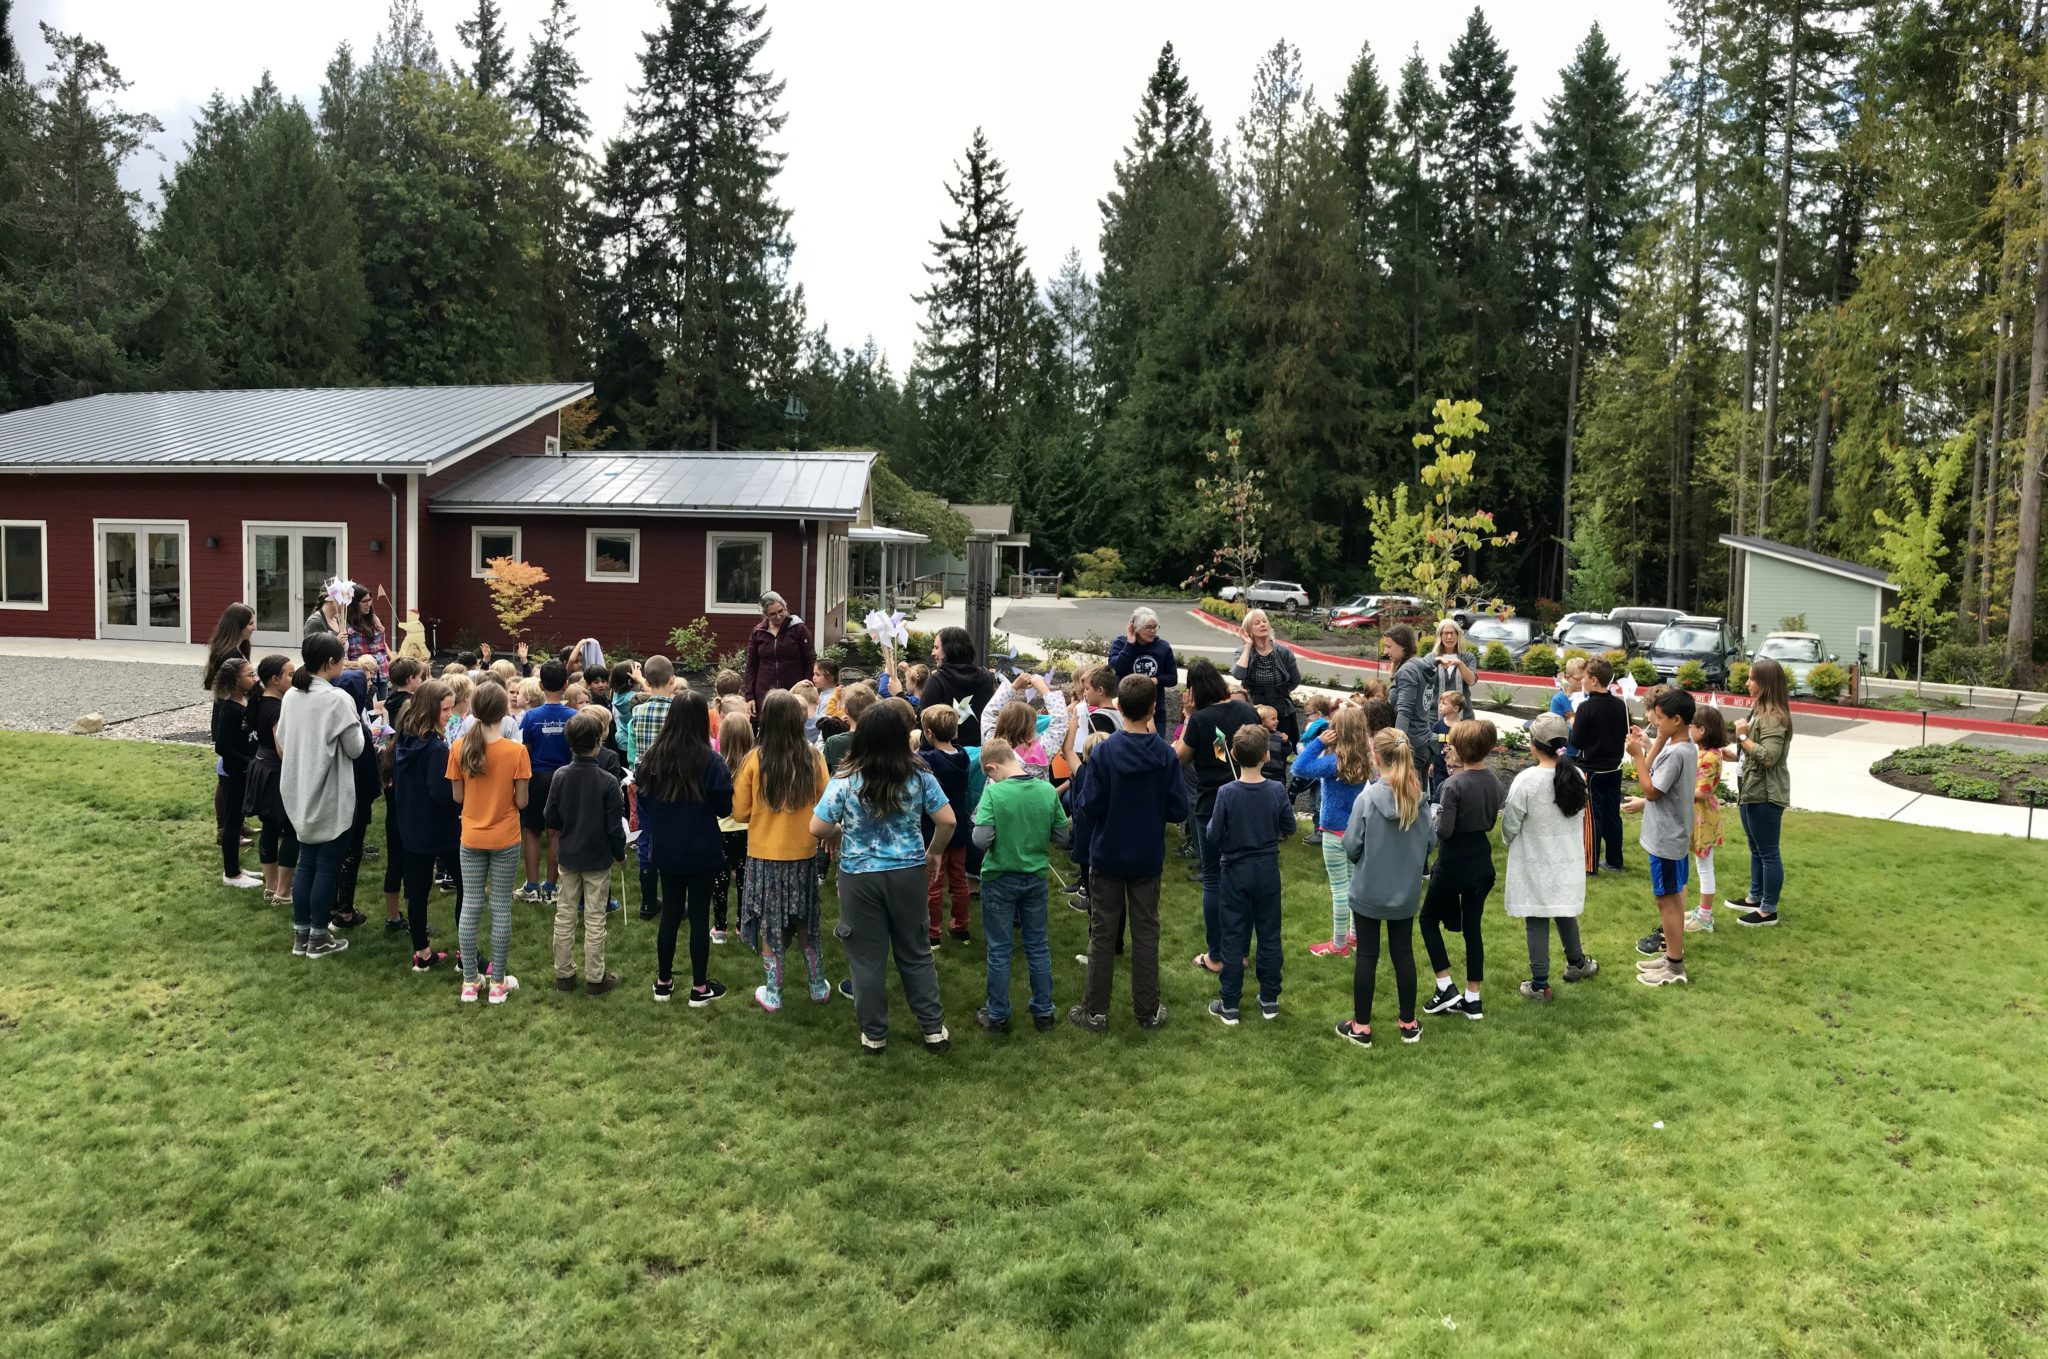 International Day Of Peace 2019 - Montessori Country School intended for Bainbridge Island School District 2020 Calendar